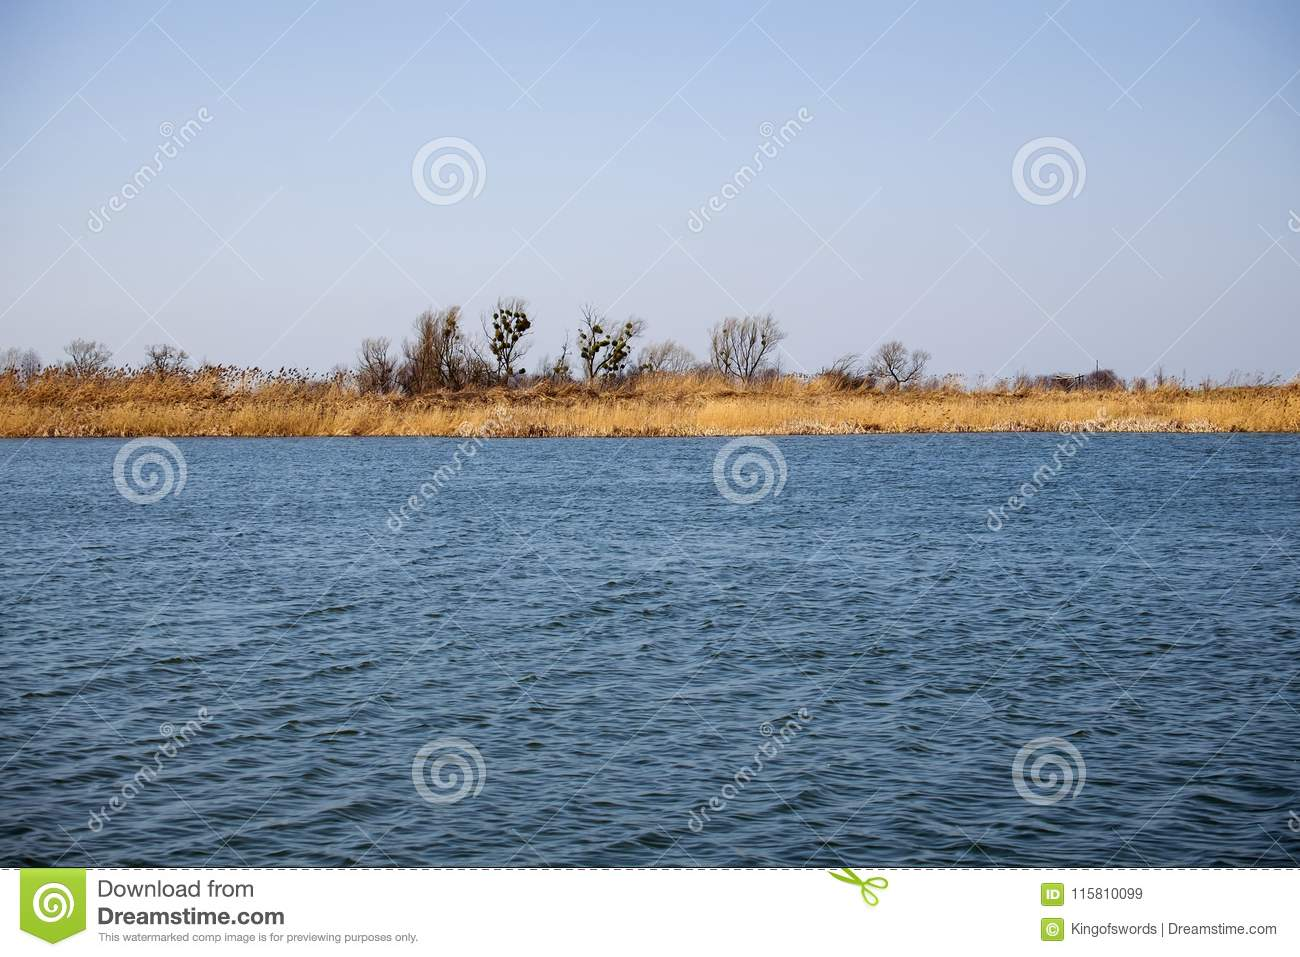 Restless water of the lake, the wind tends the dry yellowed grass to the ground and the bare trees